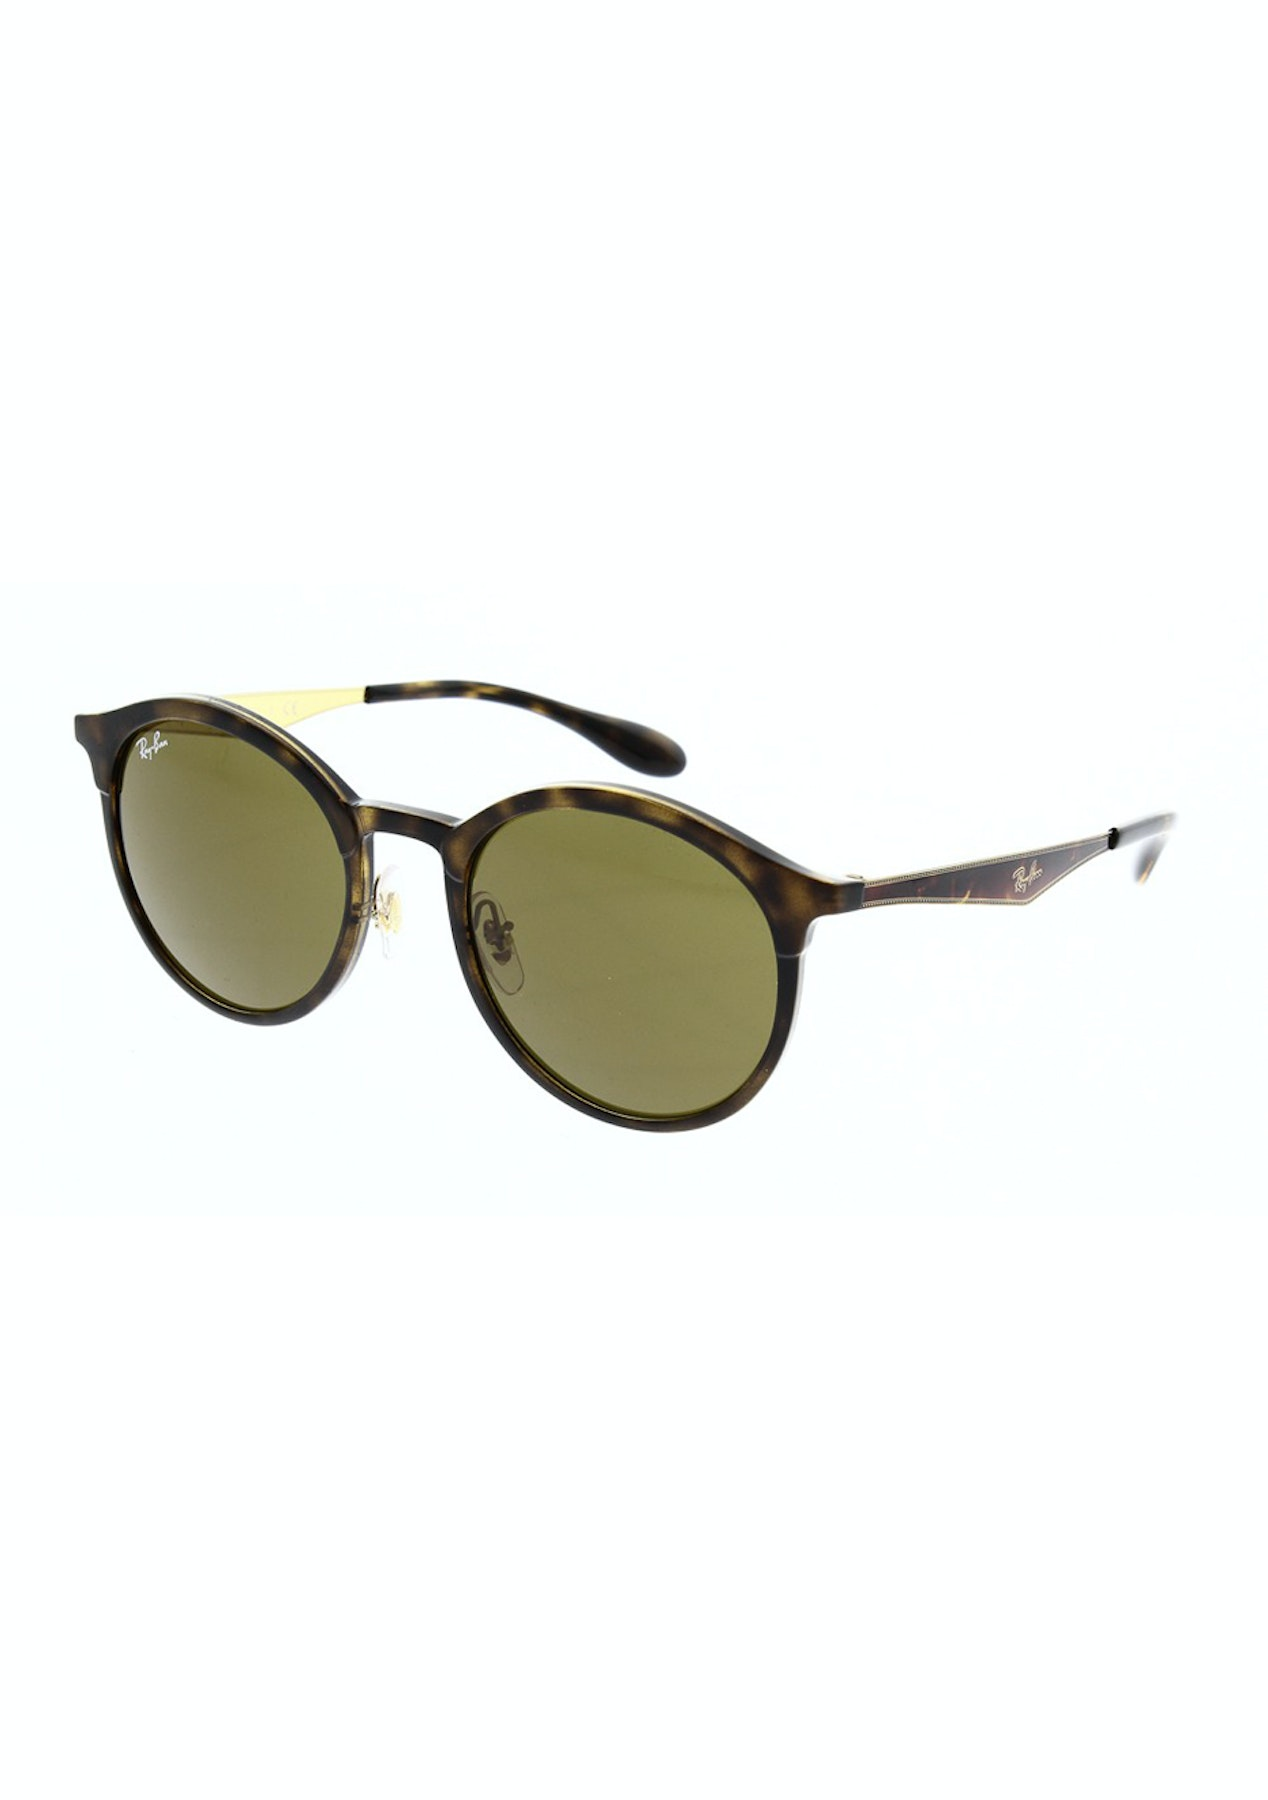 3688fcff5e Ray-Ban Emma Tortoise Brown Sunglasses - Ray-Ban Sunglasses - Up to 40% Off  - Onceit